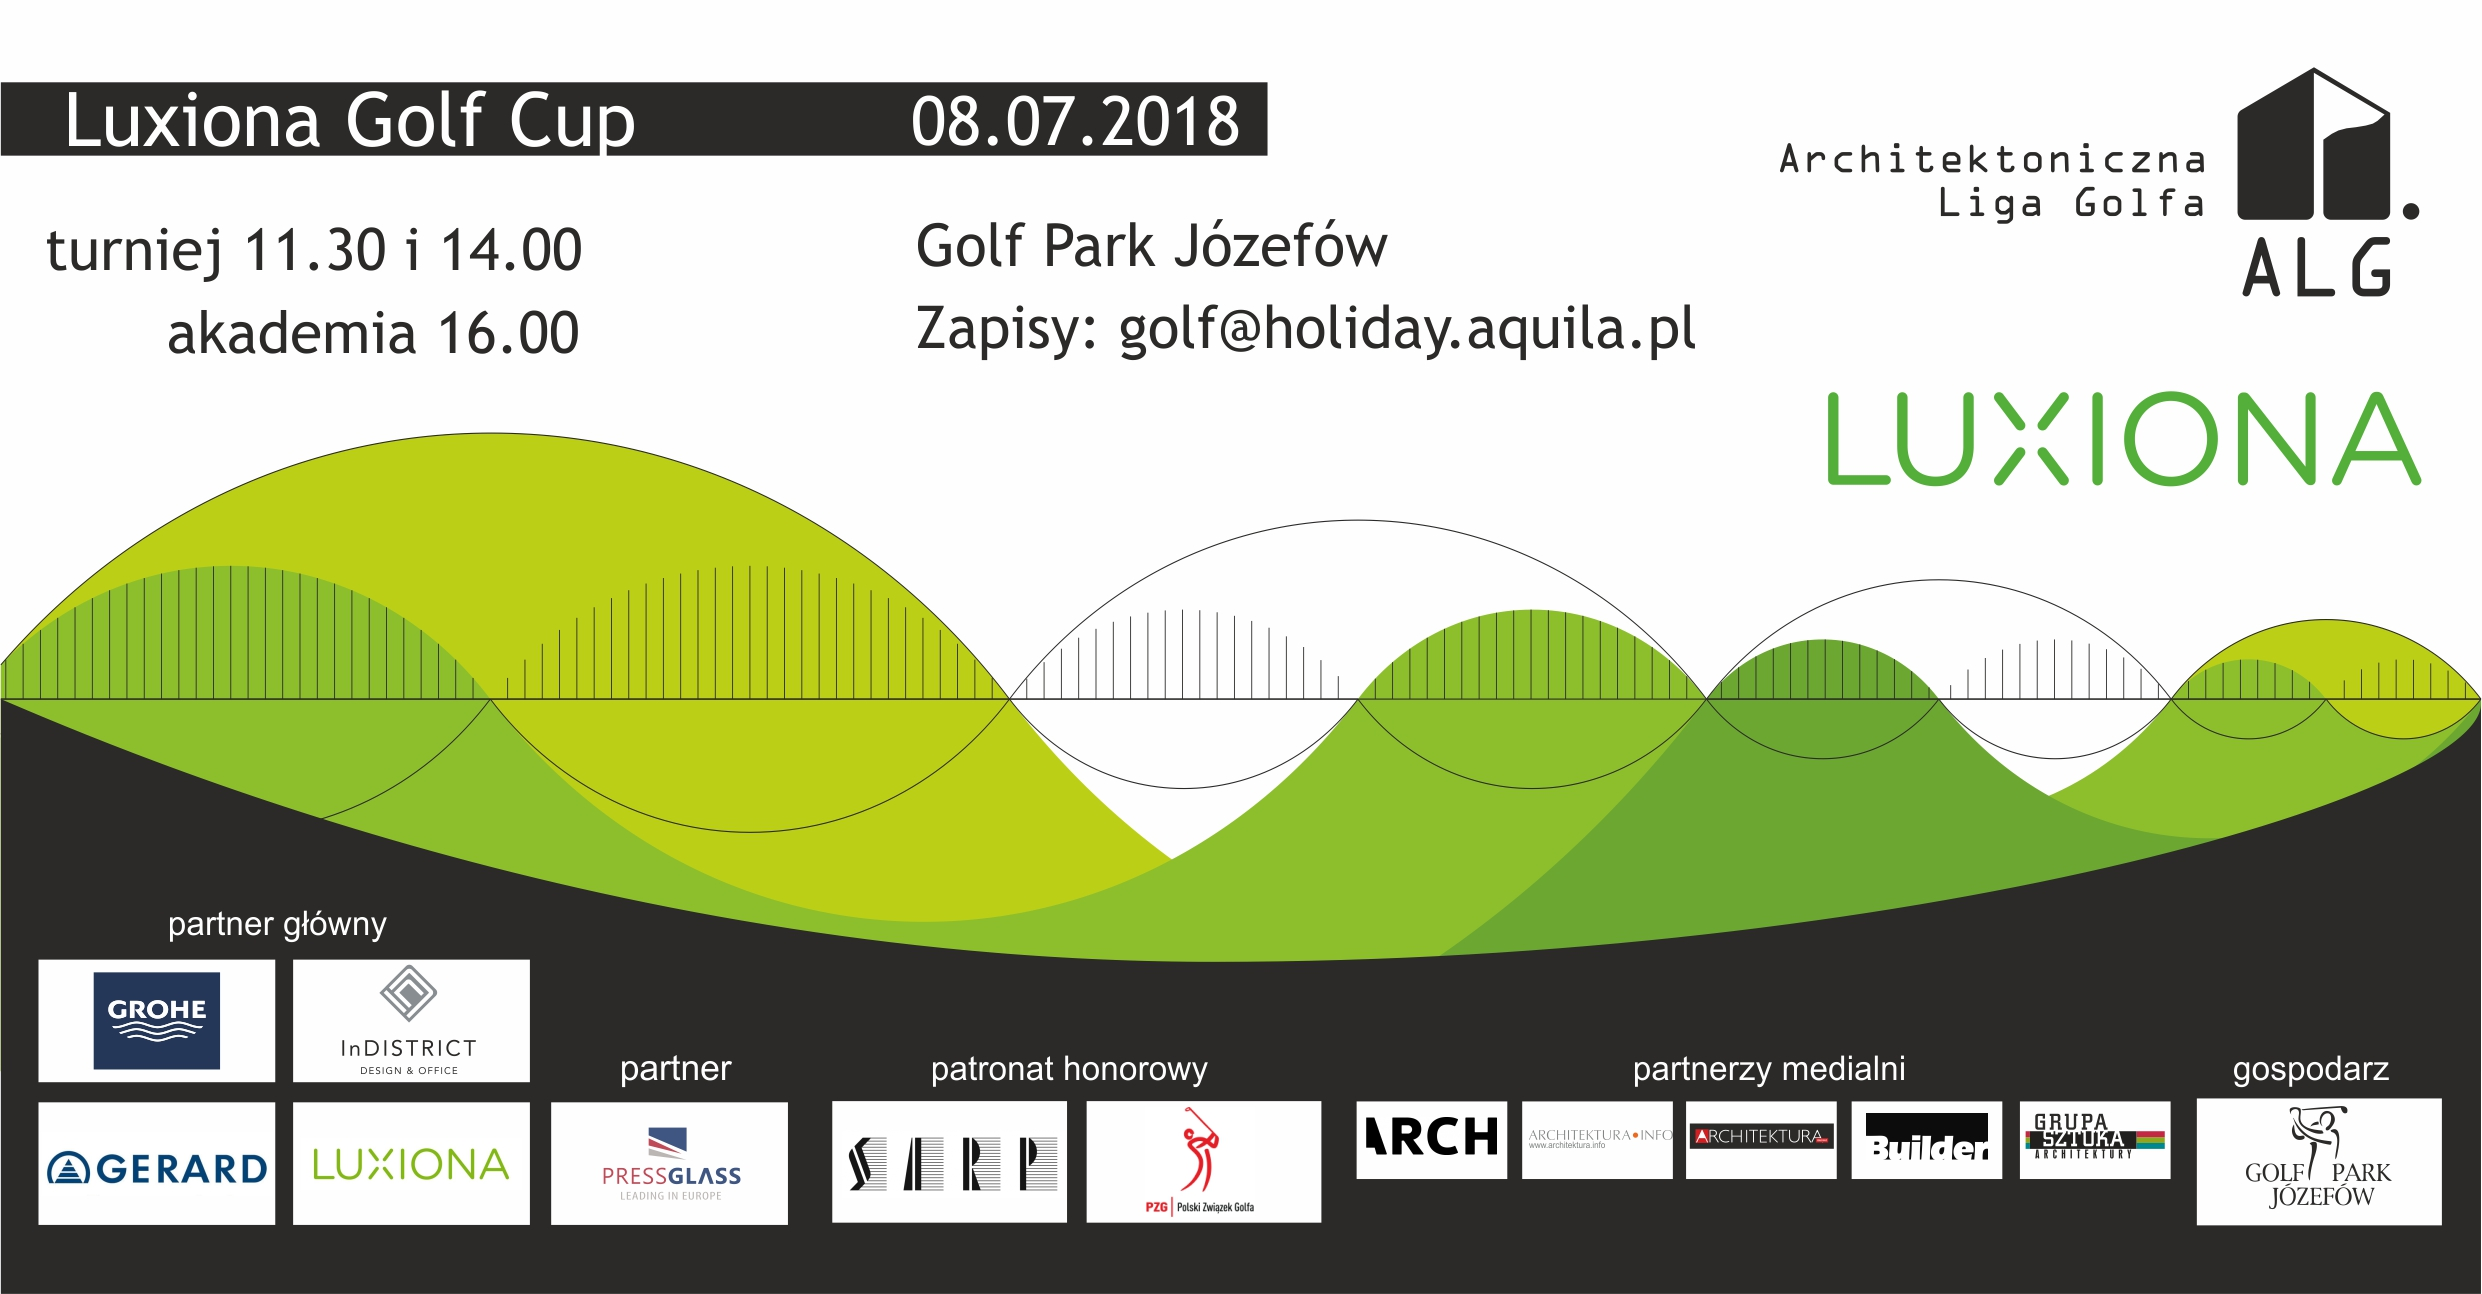 Luxiona Golf Cup